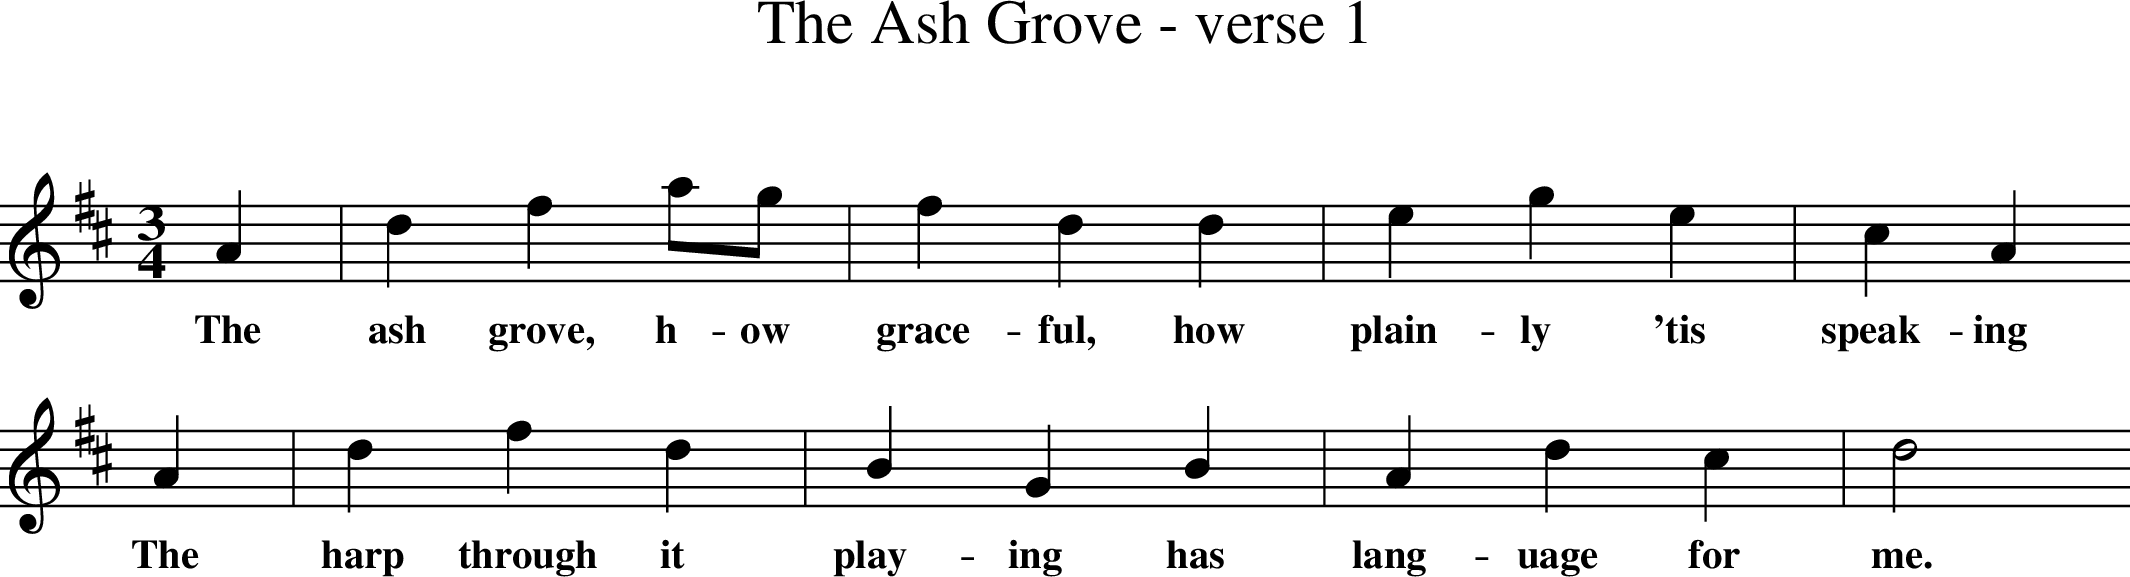 X: 1 T: The Ash Grove - verse 1 R: waltz M: 3/4 L: 1/8 K: Dmaj A2 | d2f2ag | f2d2d2 | e2 g2e2 | c2A2 w: The ash grove, h-ow grace-ful, how plain-ly